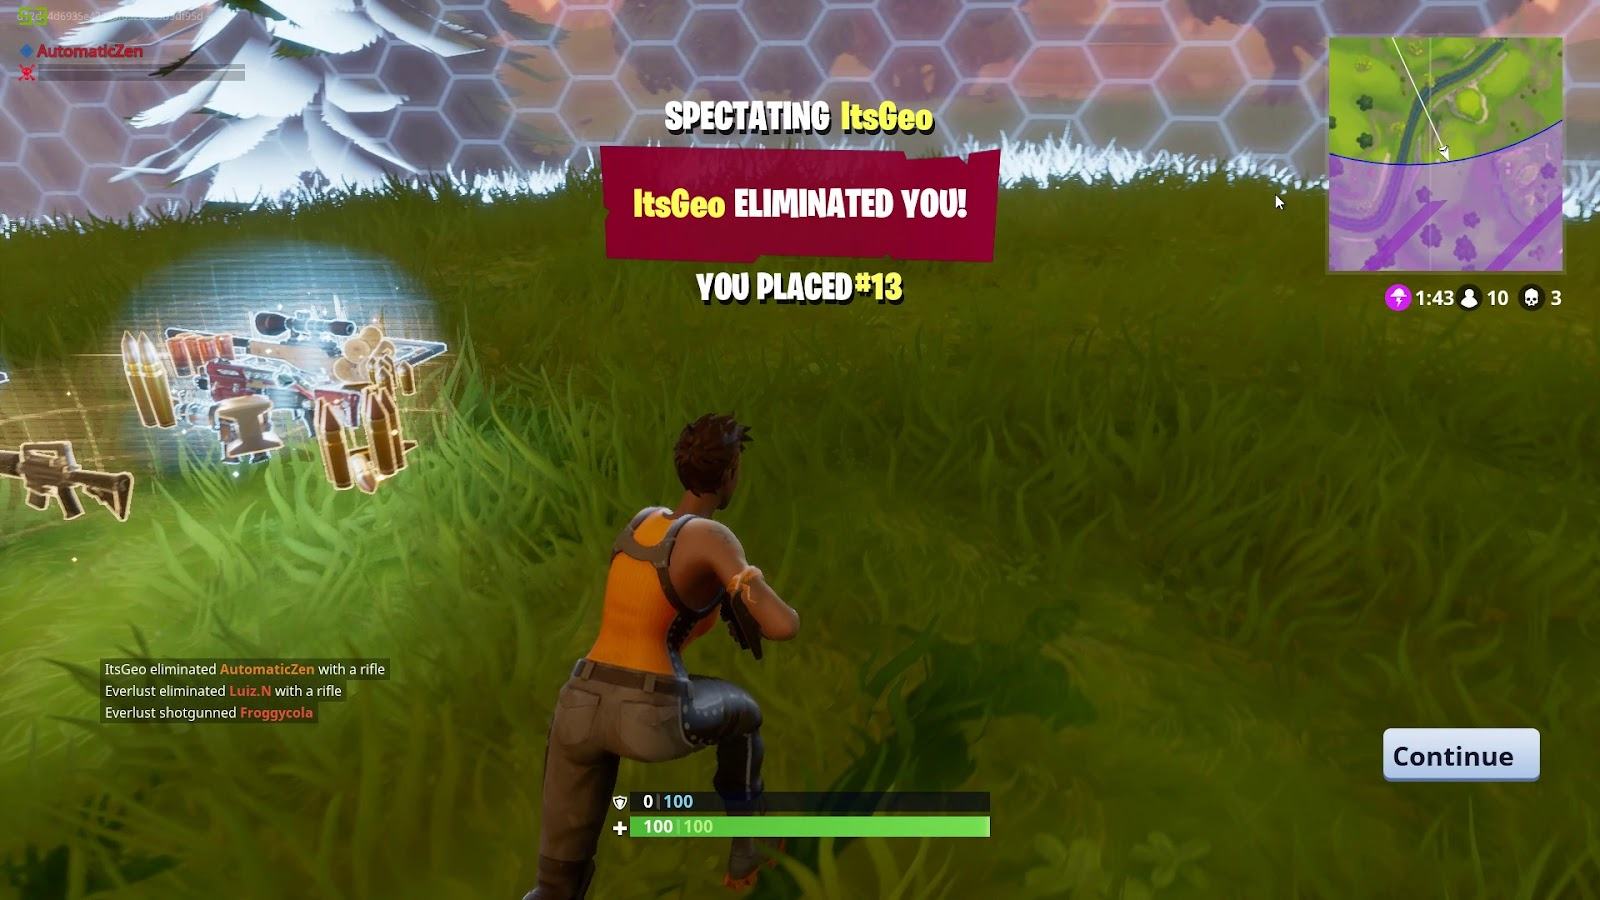 How to spectate in Fortnite Mobile